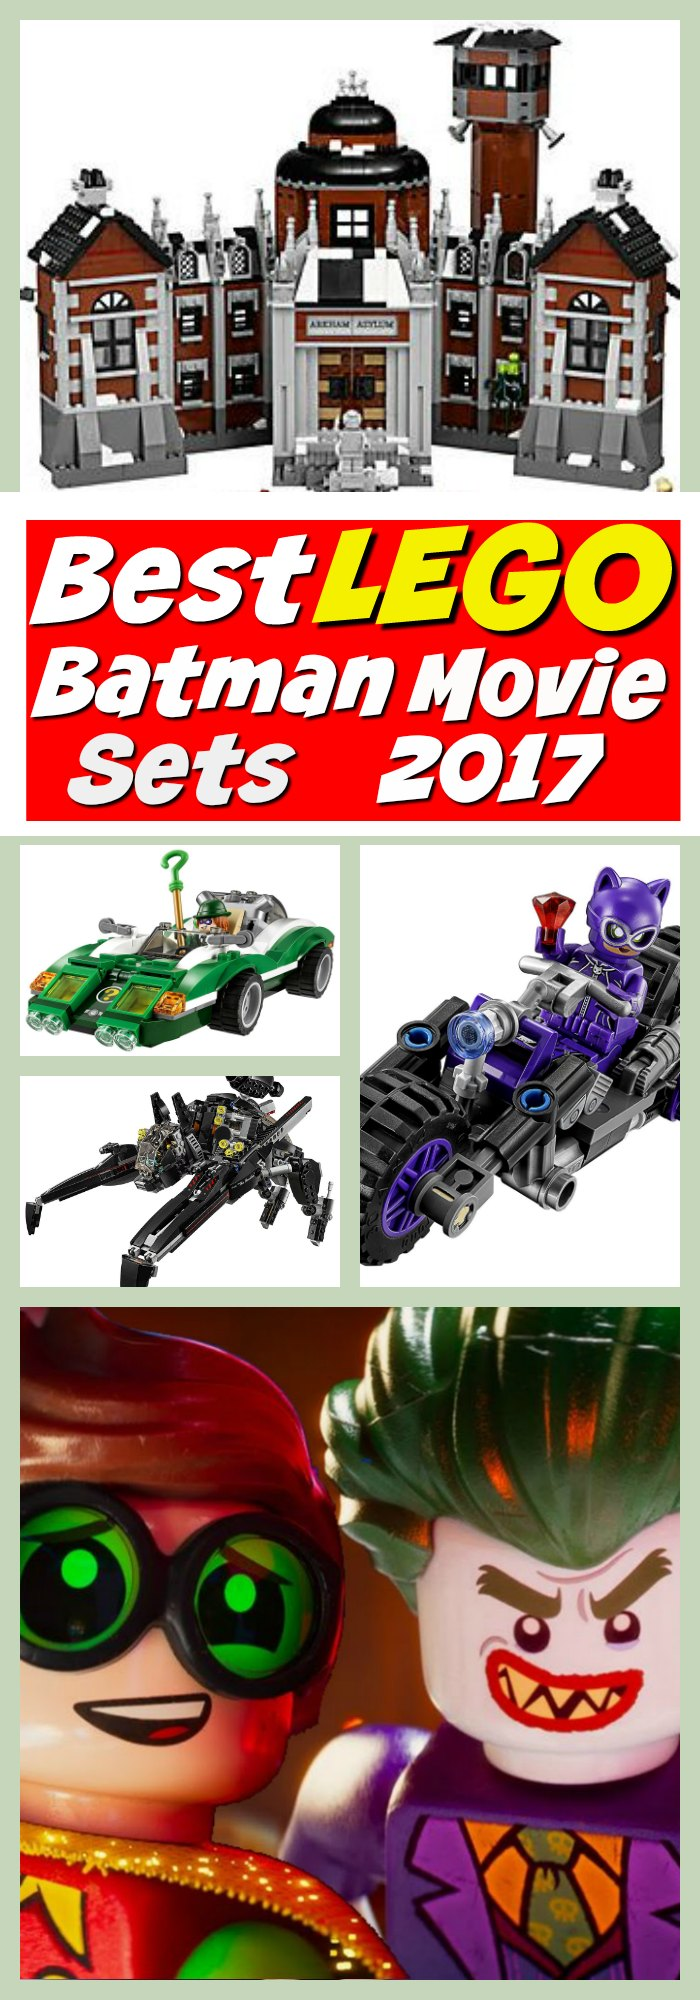 lego batman sets 2017 - photo #13